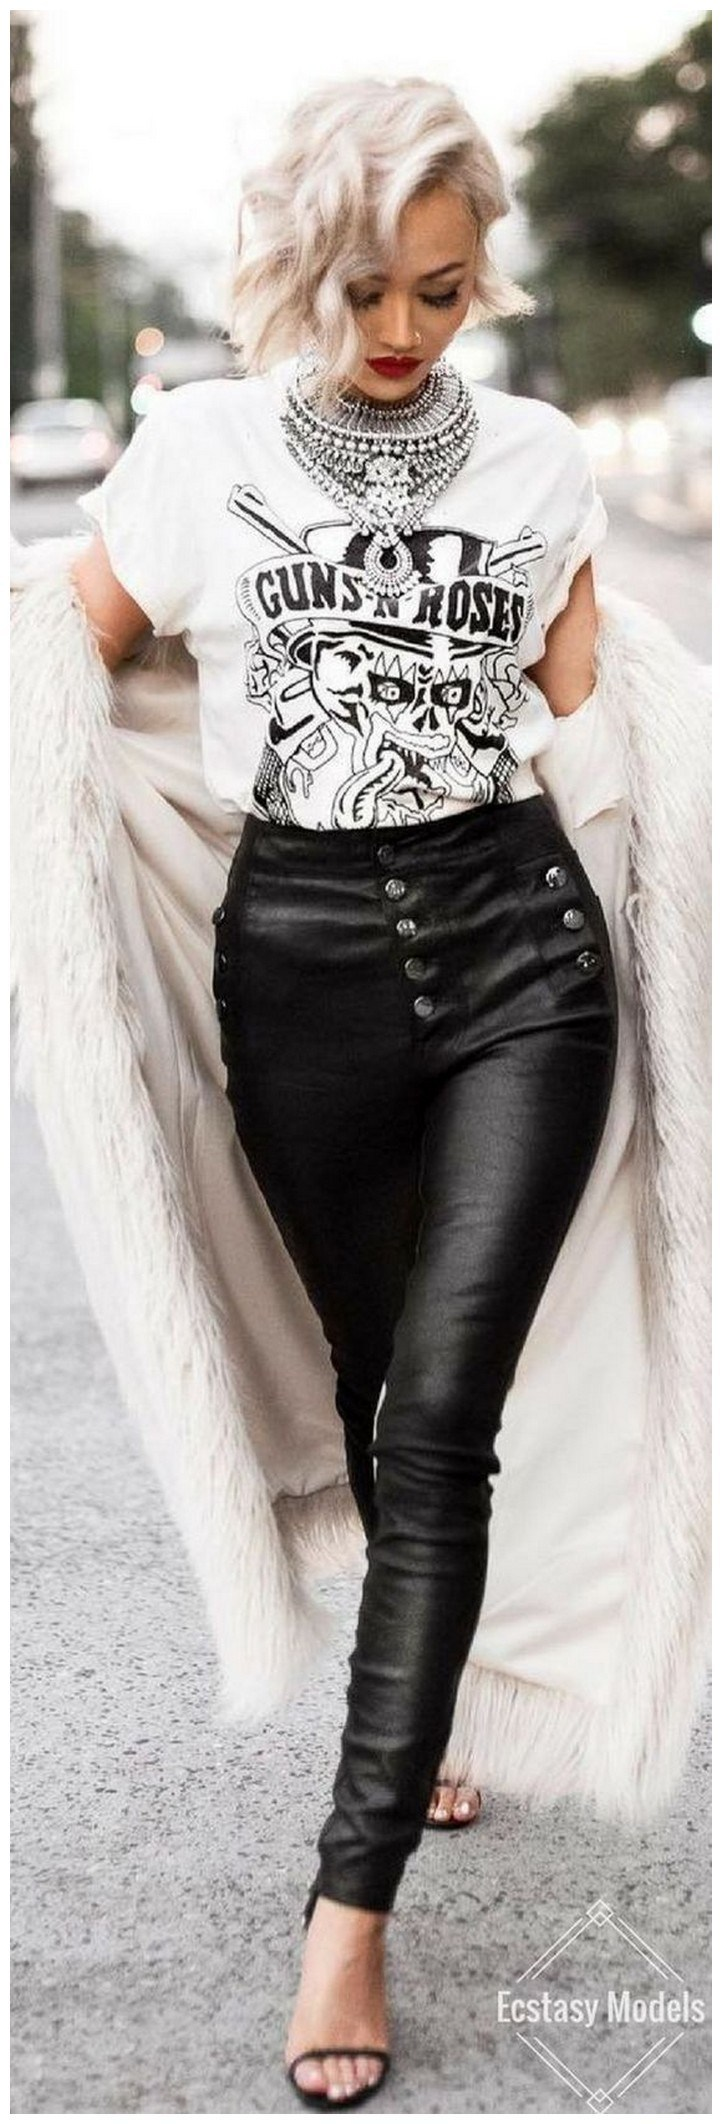 34+ rocker chic winter outfits you will love fashionplace info 8